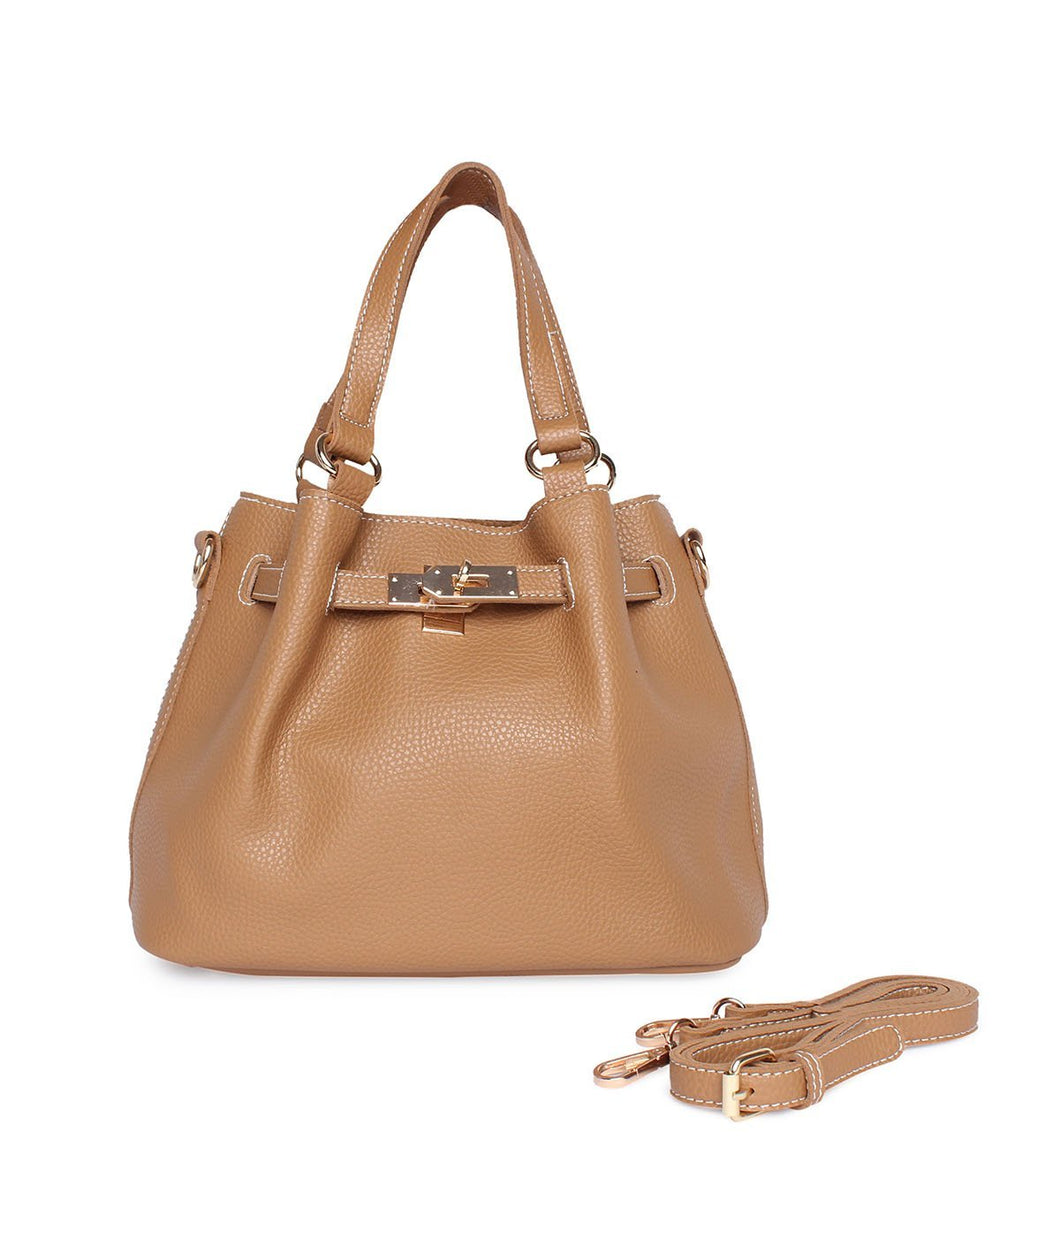 The Stylish Handbag-Tan